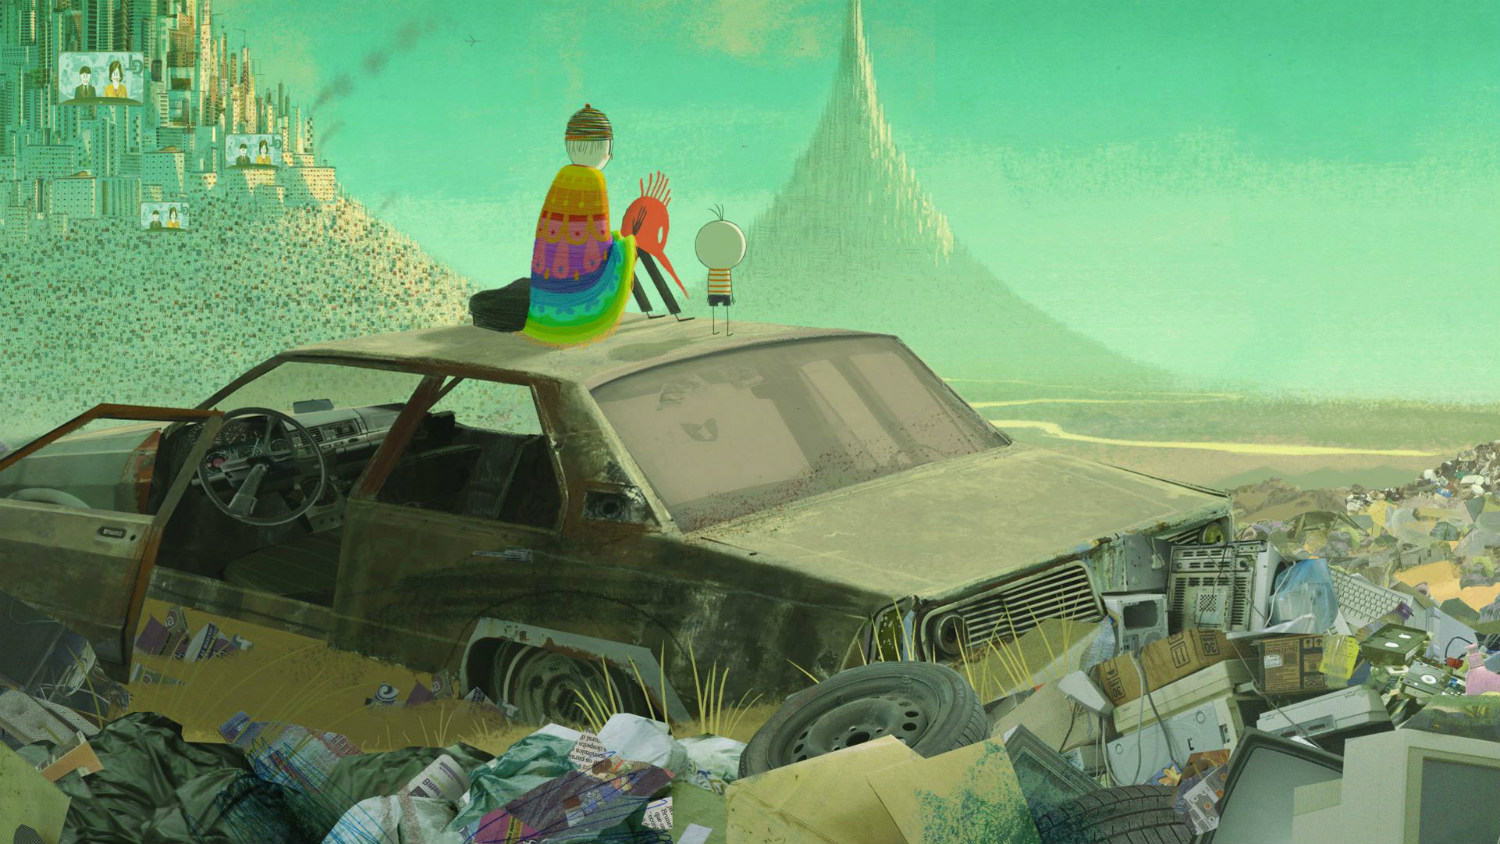 the boy and his world animation brazil car rubbish green